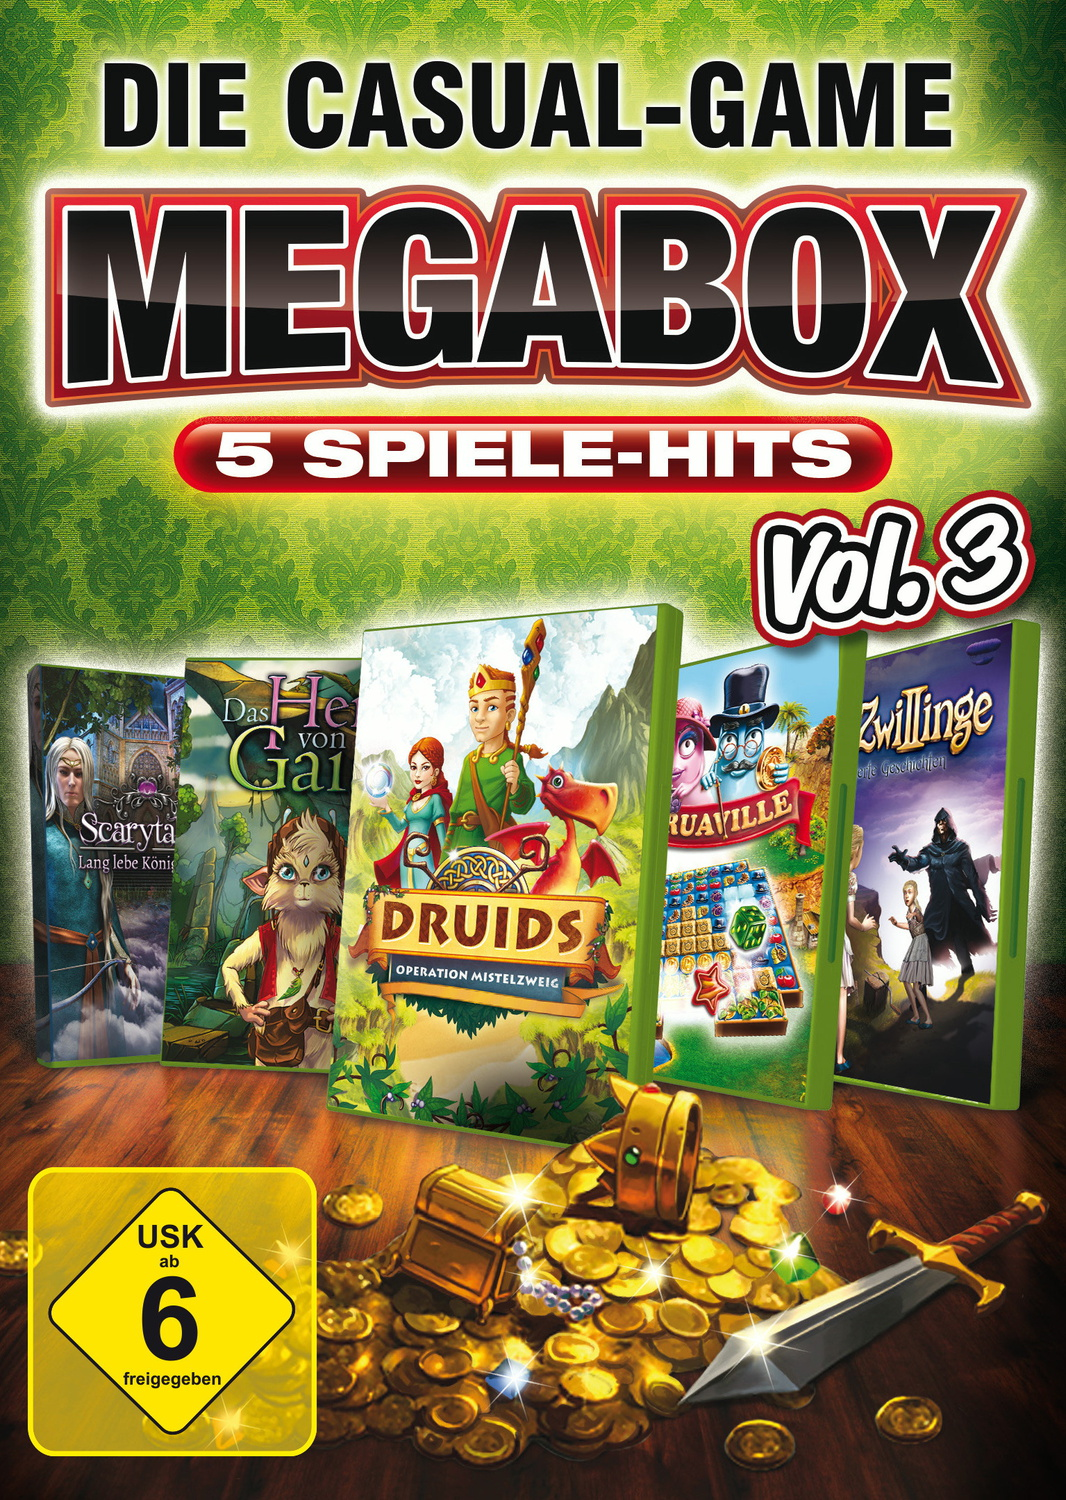 Die Casual-Game MegaBox vol. 3 (PC)